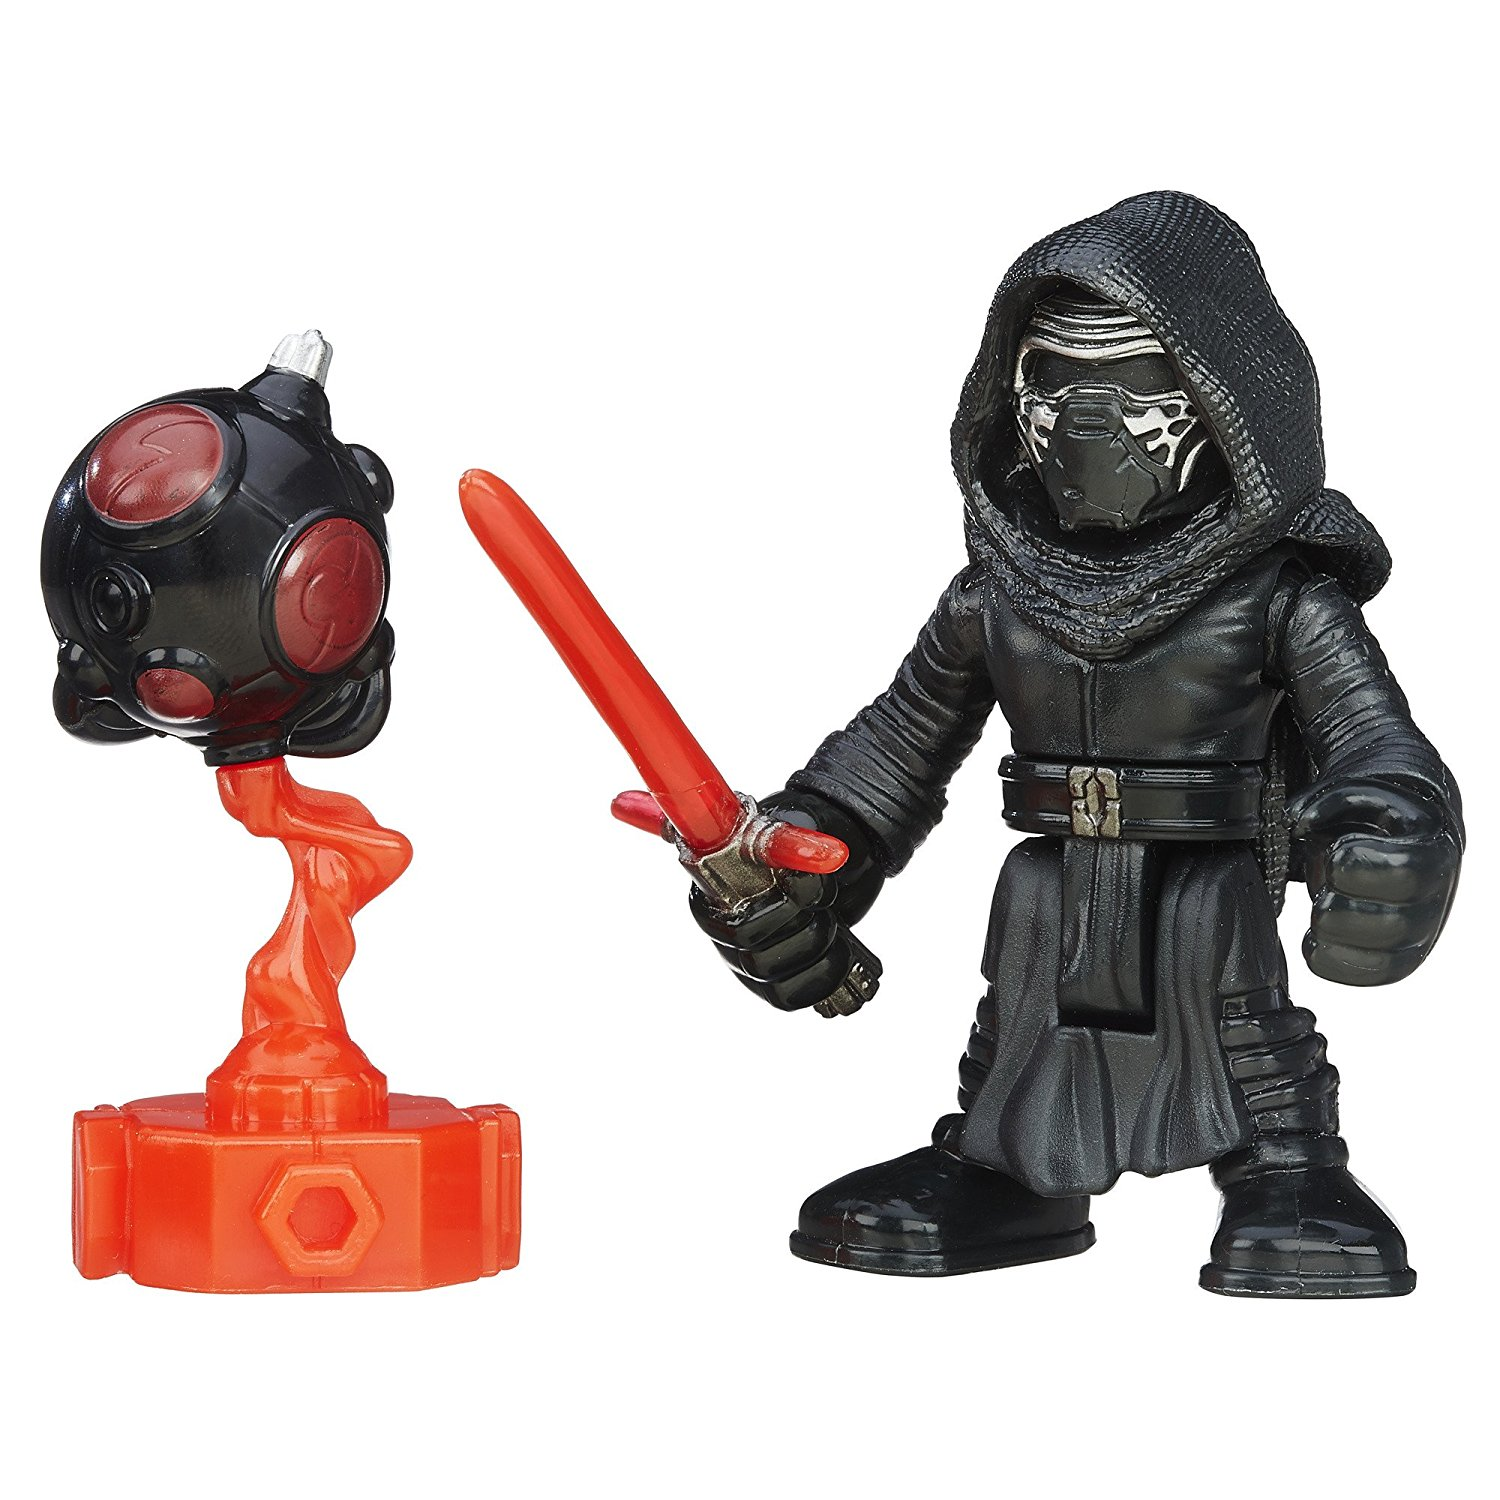 Heroes Galactic Heroes Star Wars Kylo Ren, Sized right for smaller hands By Playskool by